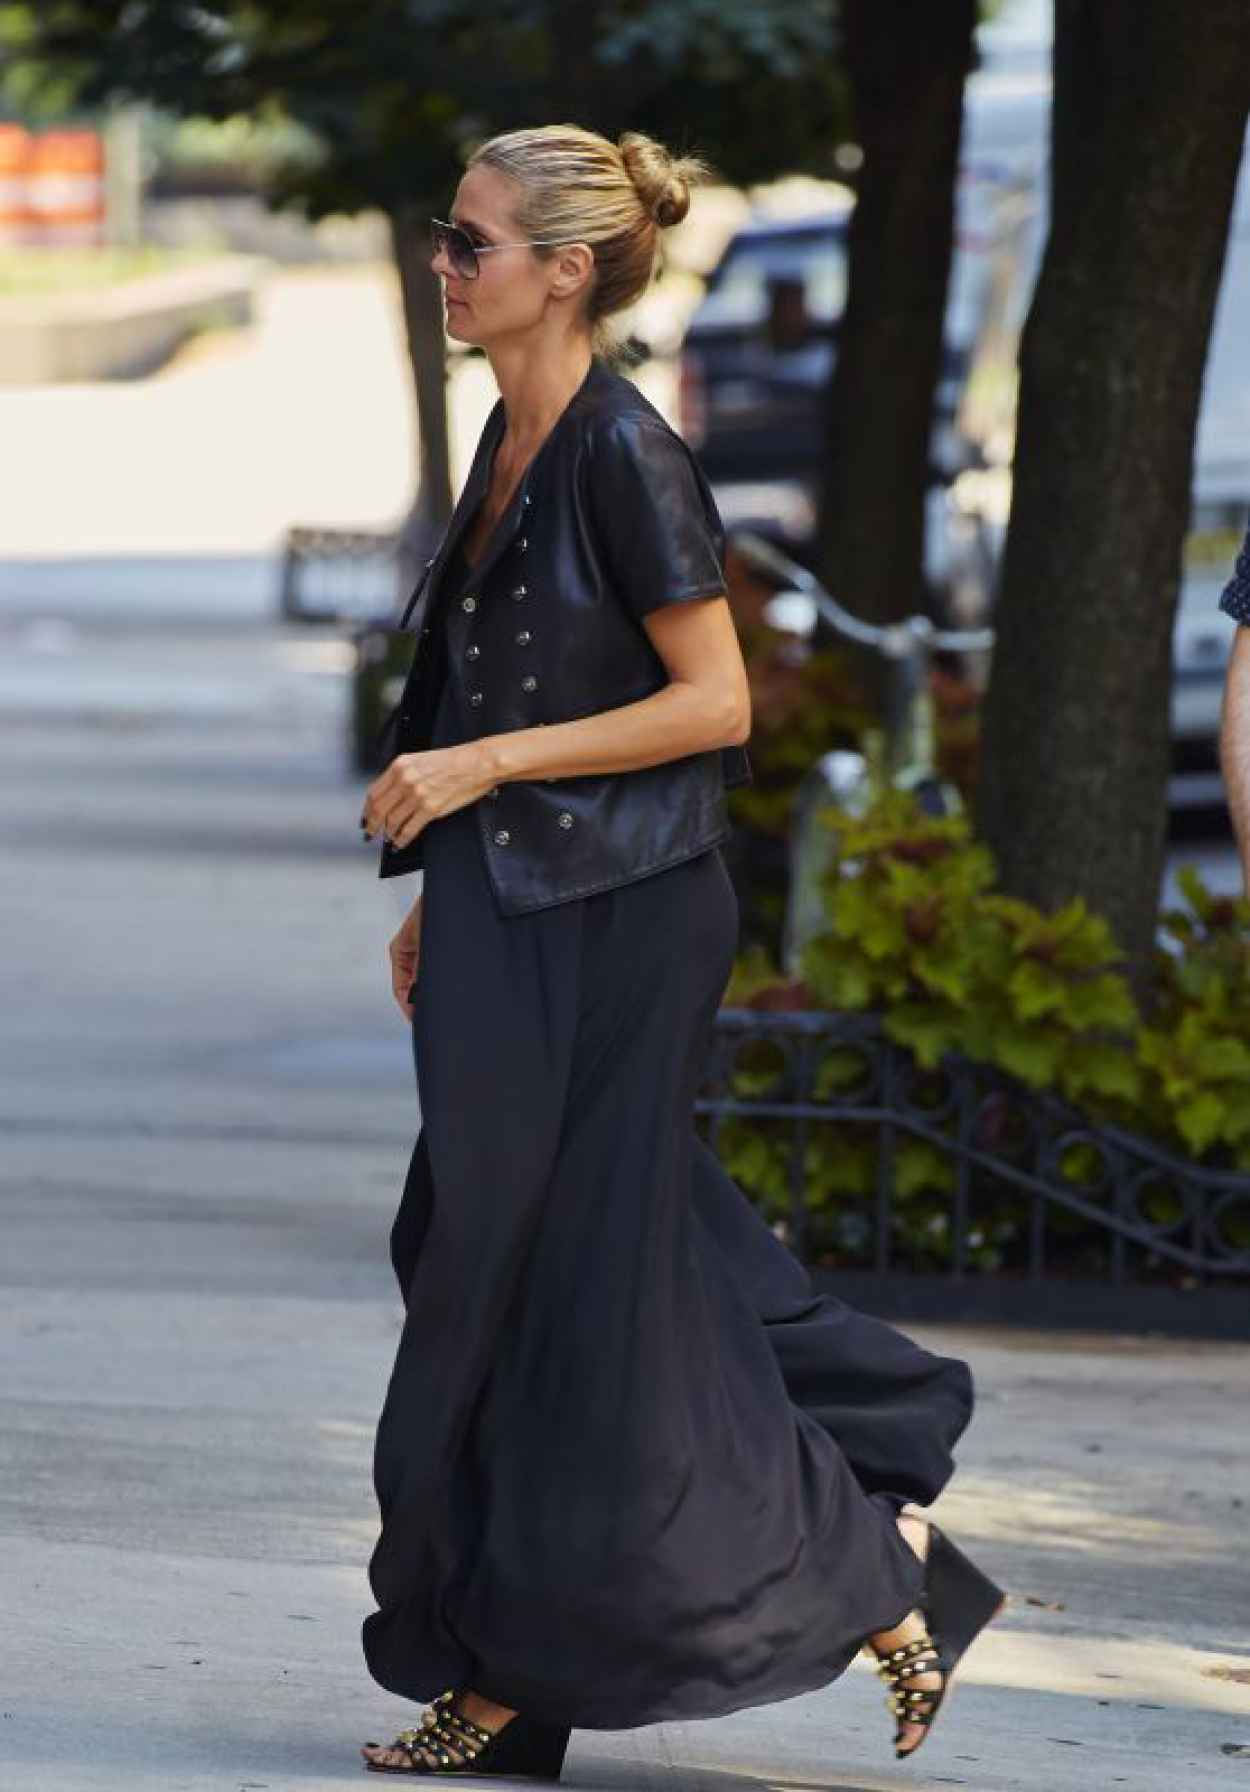 Heidi Klum Departing Her Residence in the West Village Neightborhood of New York, August 2015-1